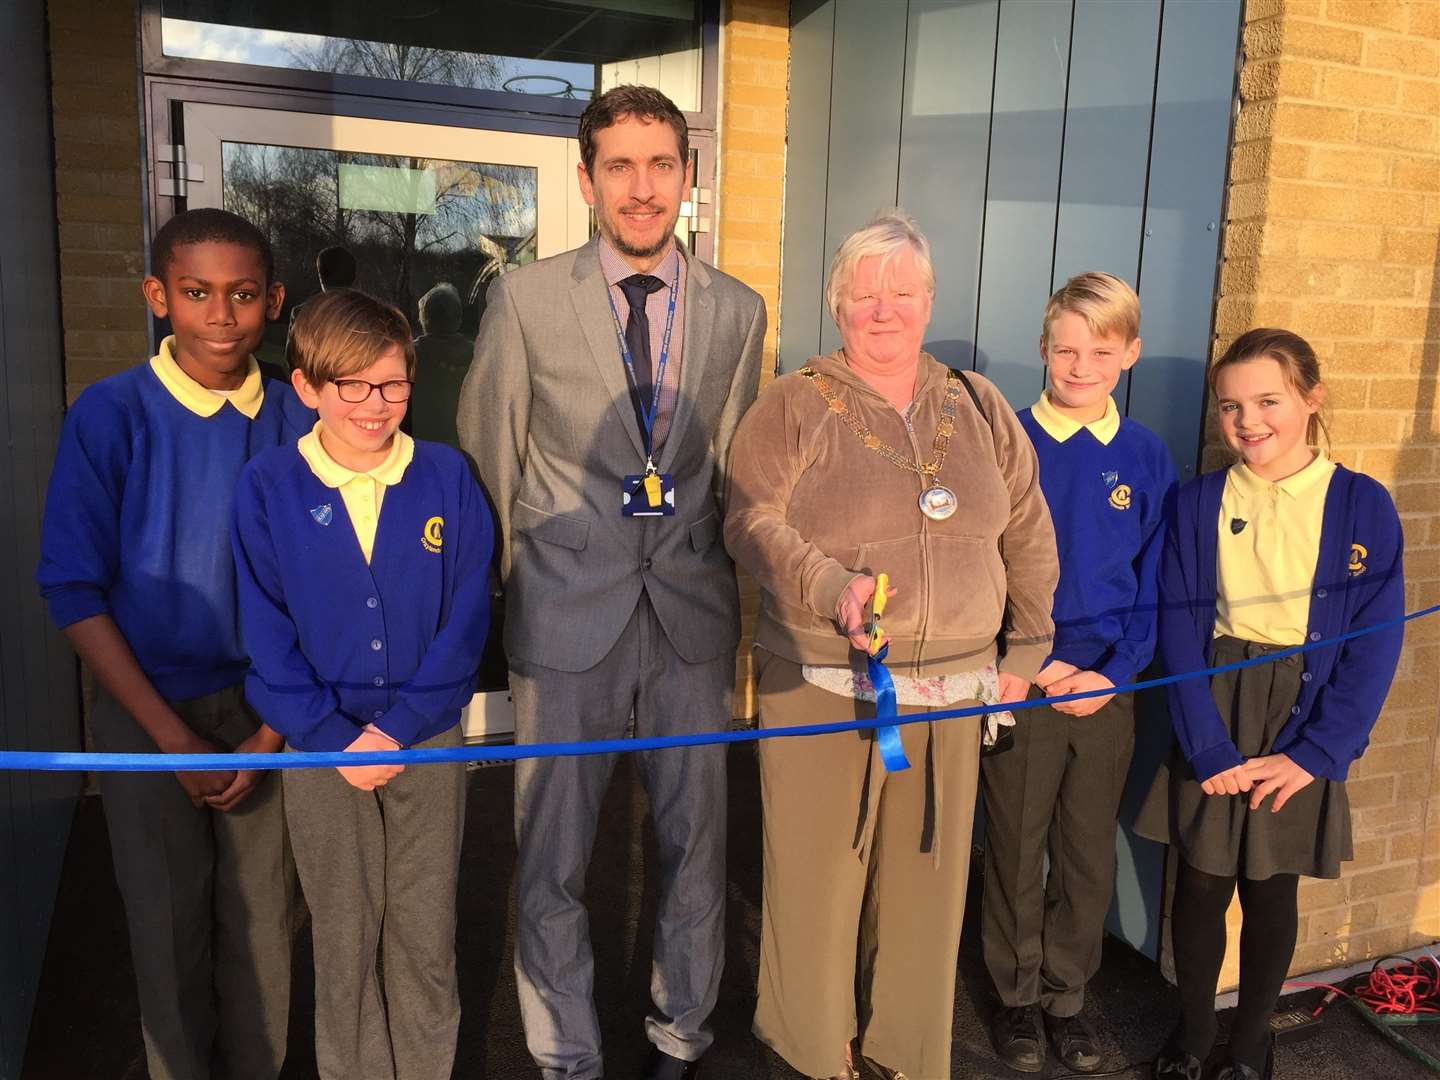 Mayor of Swanscombe and Greenhithe, Cllr Anita Barham, declared the building officially open.